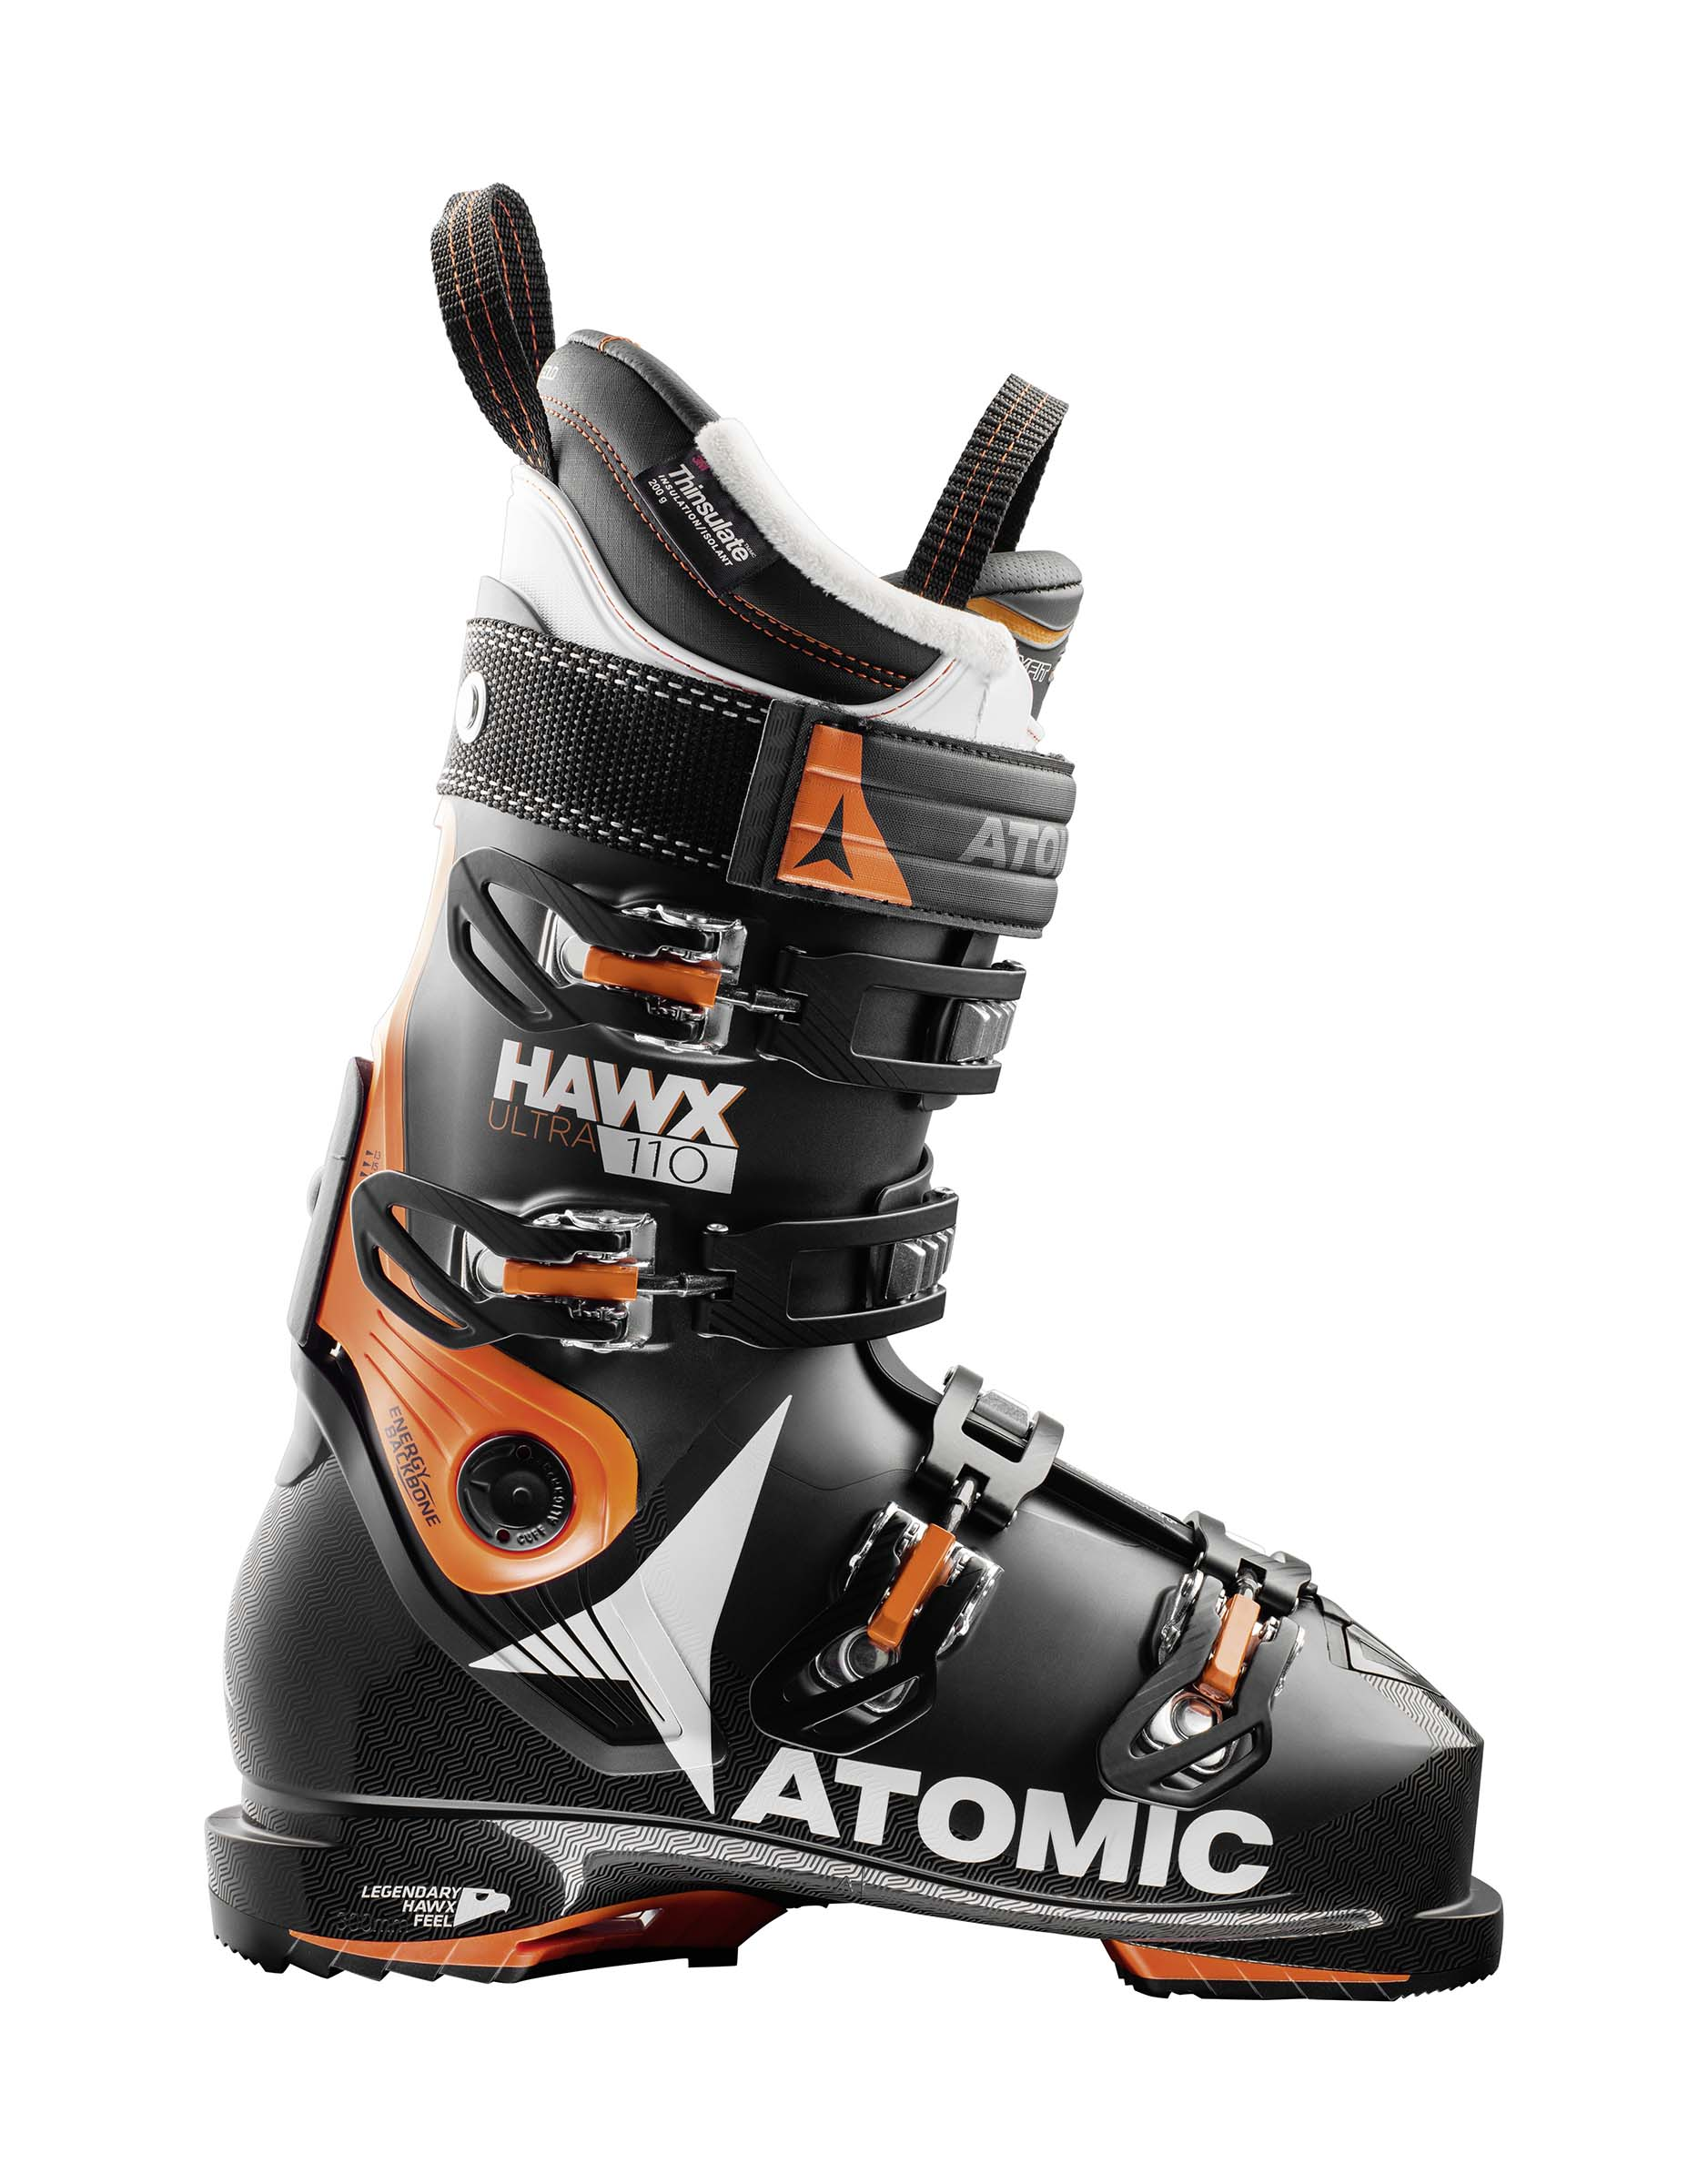 separation shoes ae5a1 d6375 Atomic Hawx Ultra 110 Ski Boots